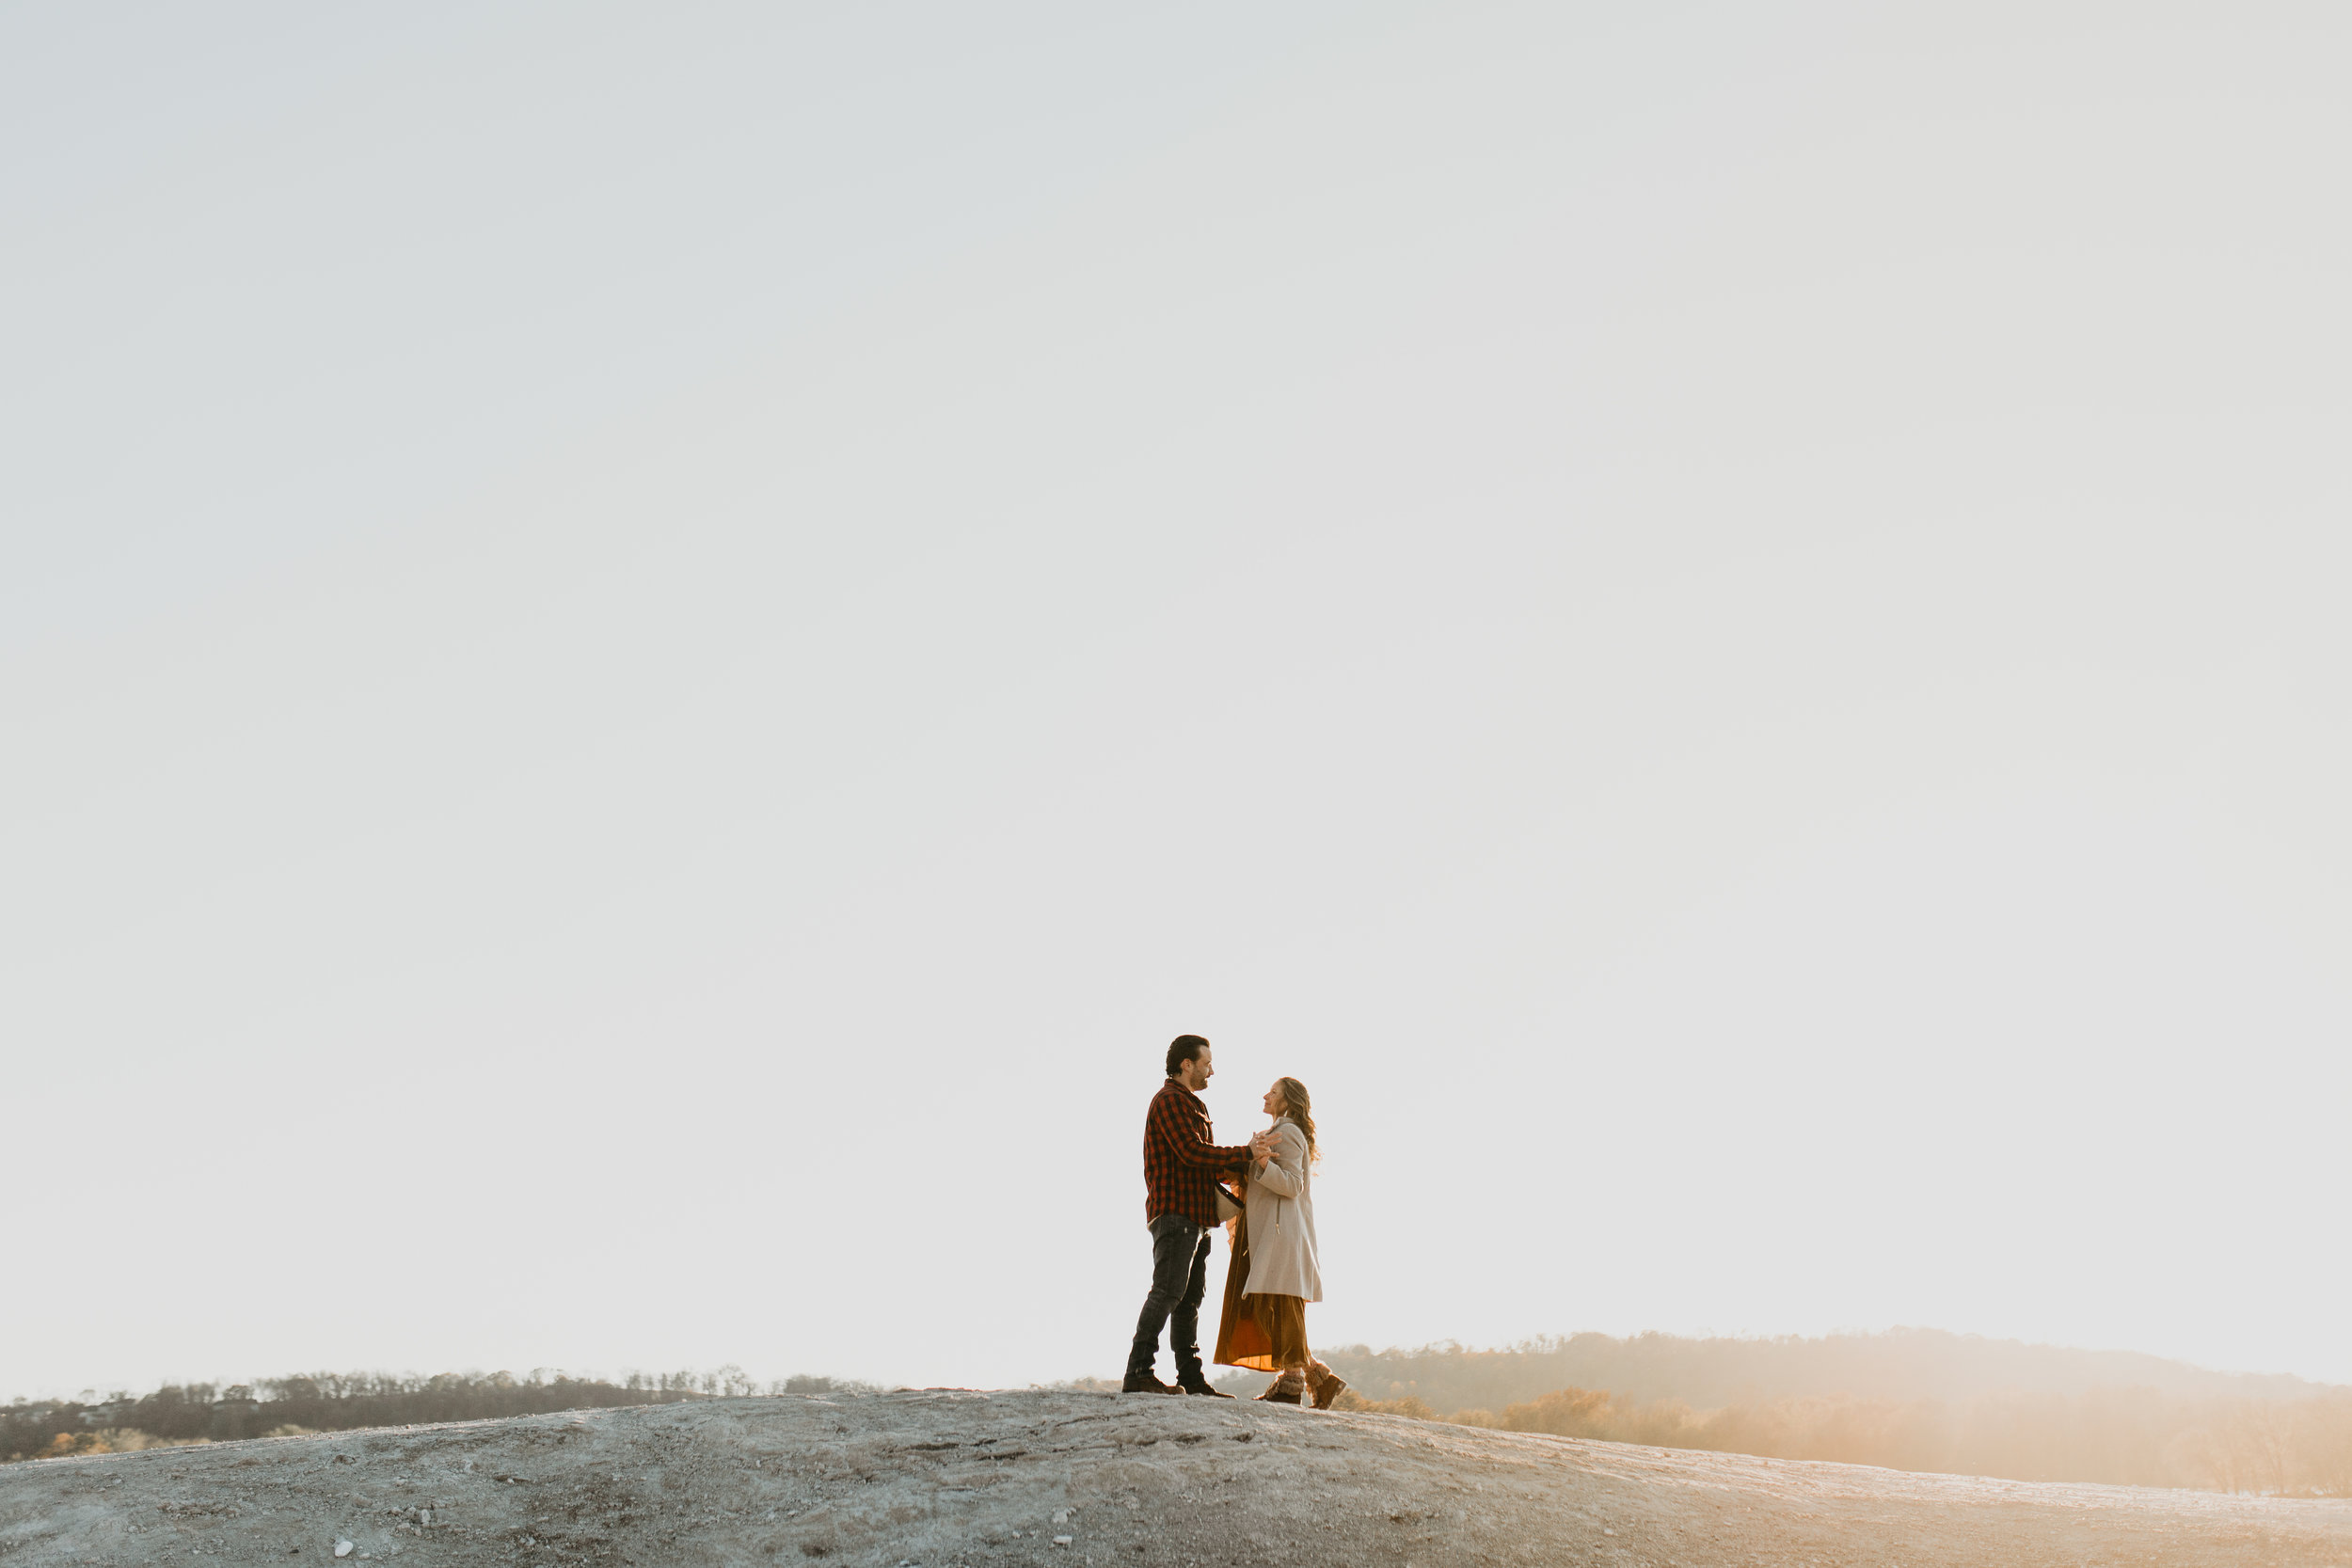 nicole-daacke-photography-white-cliffs-of-conoy-in-lancaster-pa-pennsylvania-adventure-session-adventure-elopement-photographer-engagement session-in-lancaster-pa-photographer-golden-sunset-winter-solstice-wedding-riverside-elopement-4065.jpg